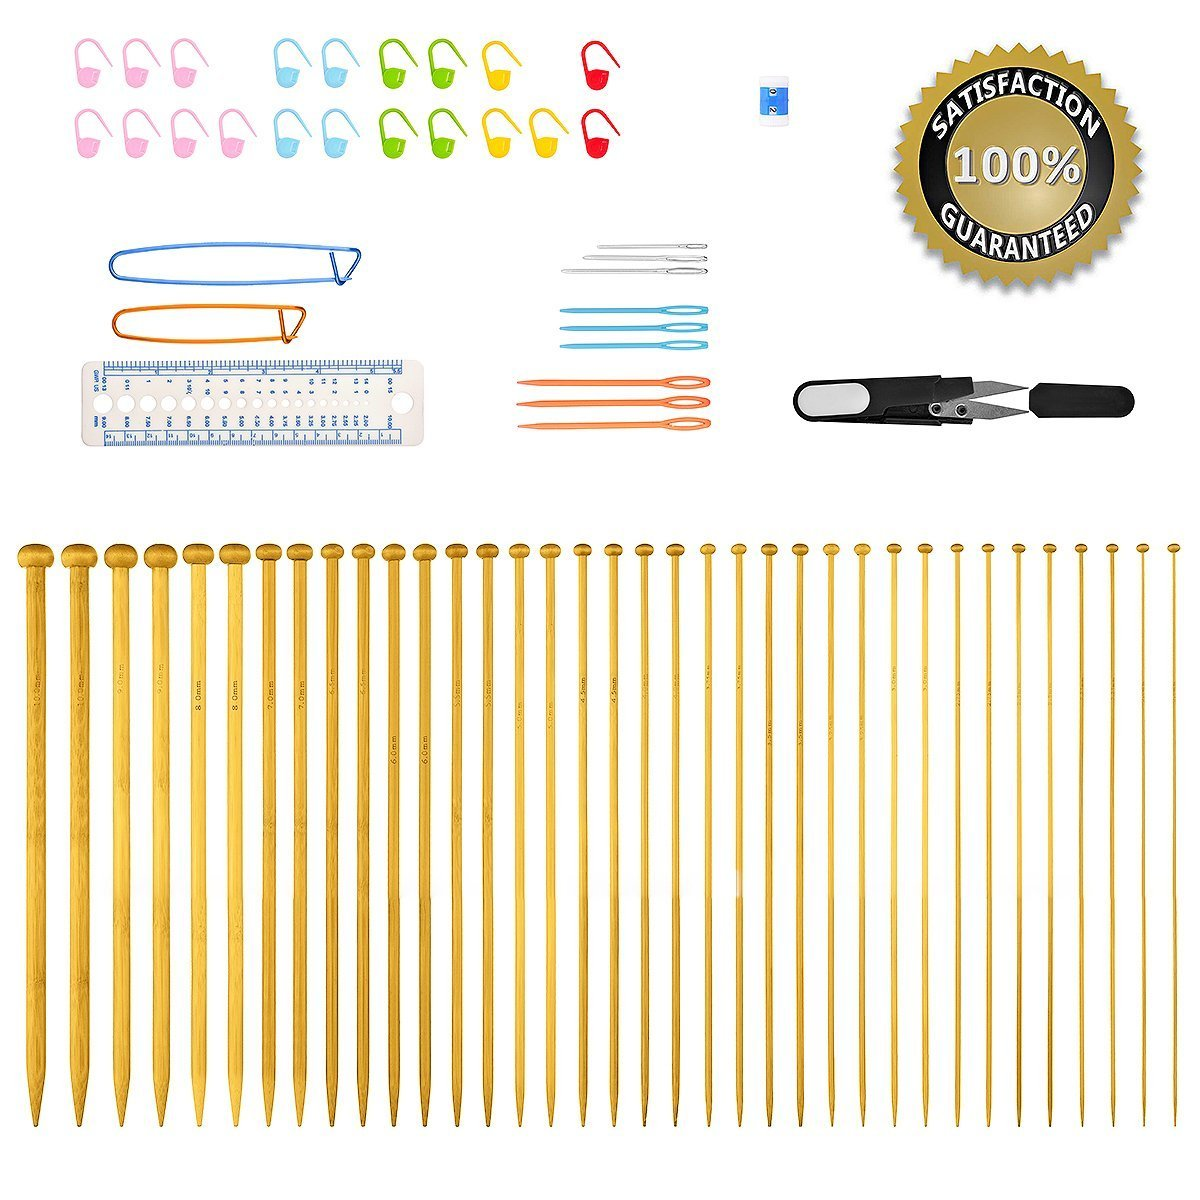 Knitting Needles, BCMrun 36PCS 25CM(9.84in) Bamboo Knitting Needles 18 Sizes from 2.0mm to 10.0mm with 34PCS Accessories